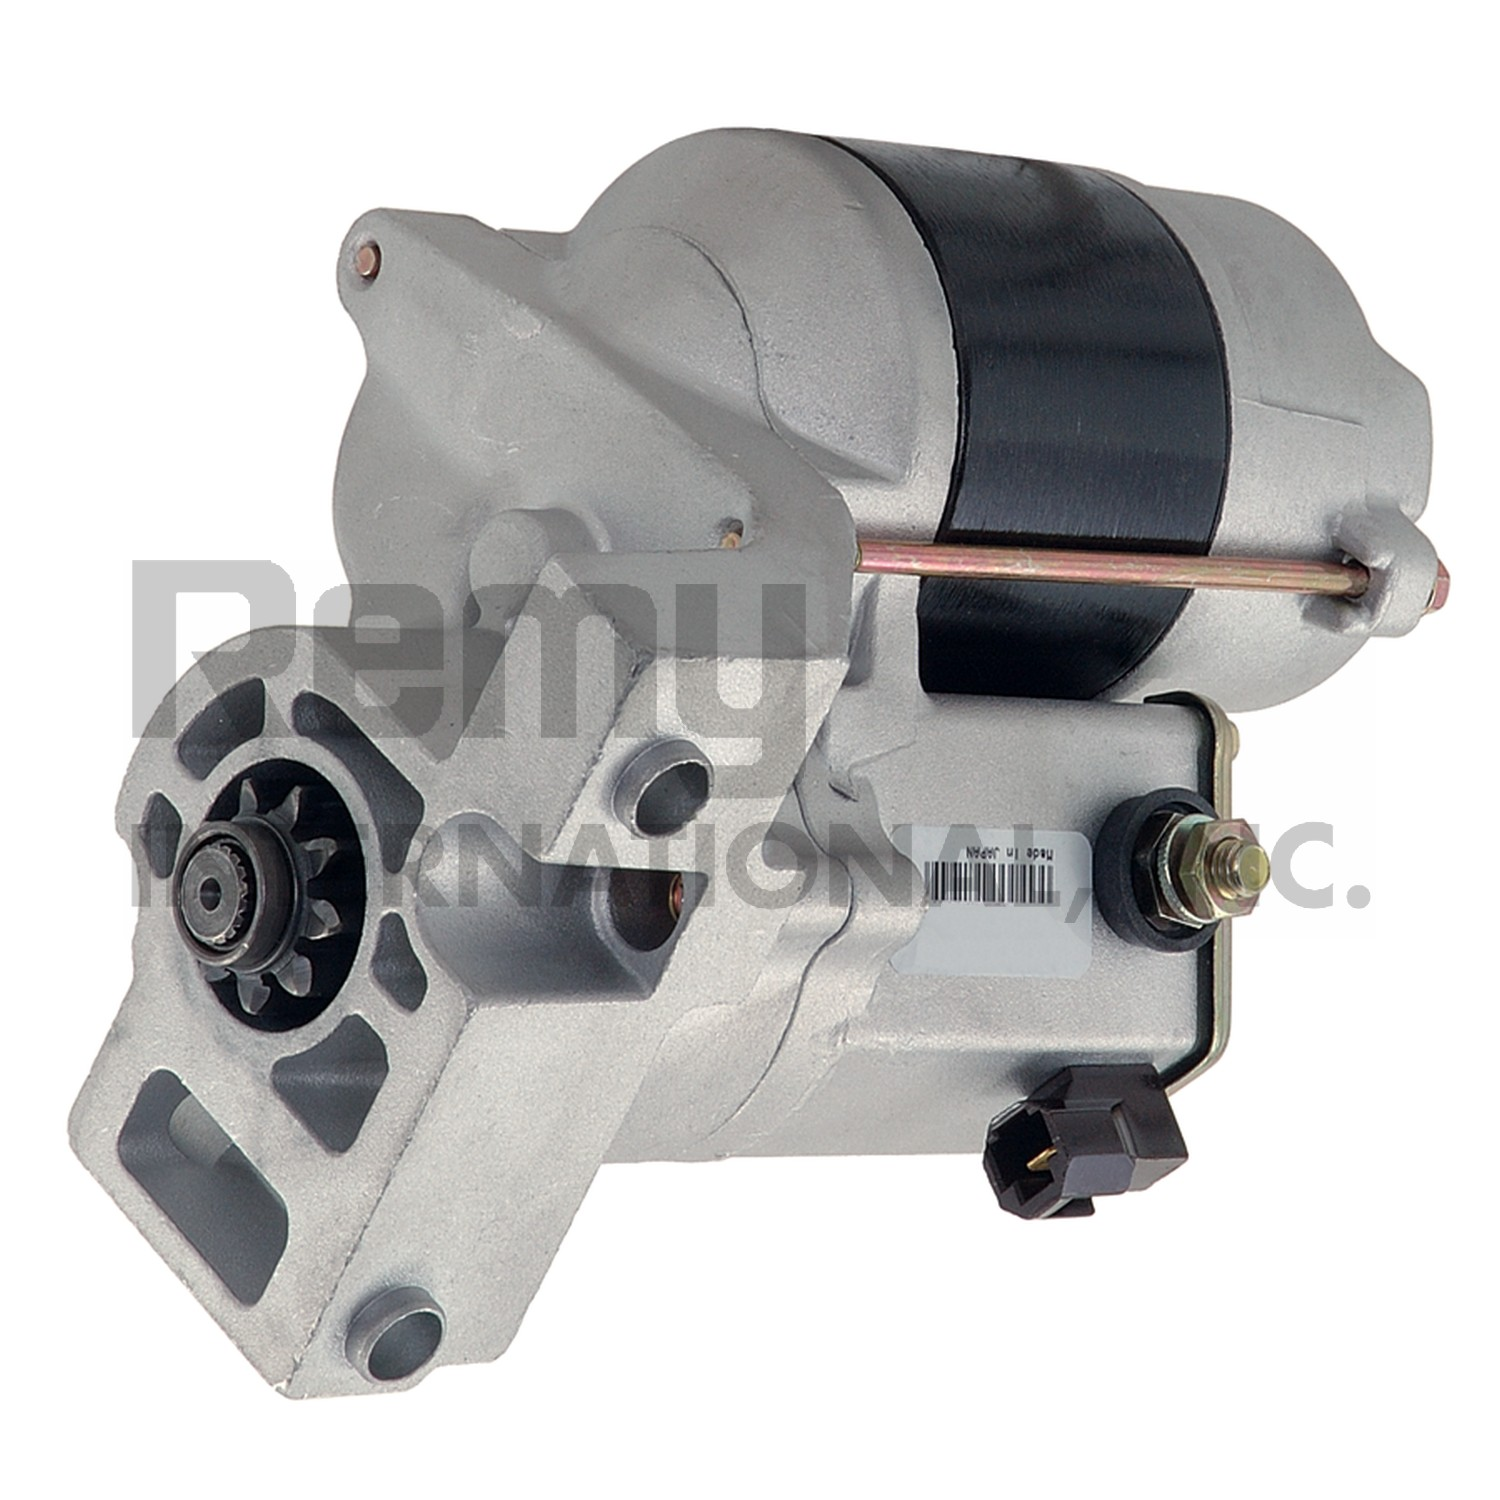 hight resolution of details about remy 17194 starter motor for 94 02 honda passport